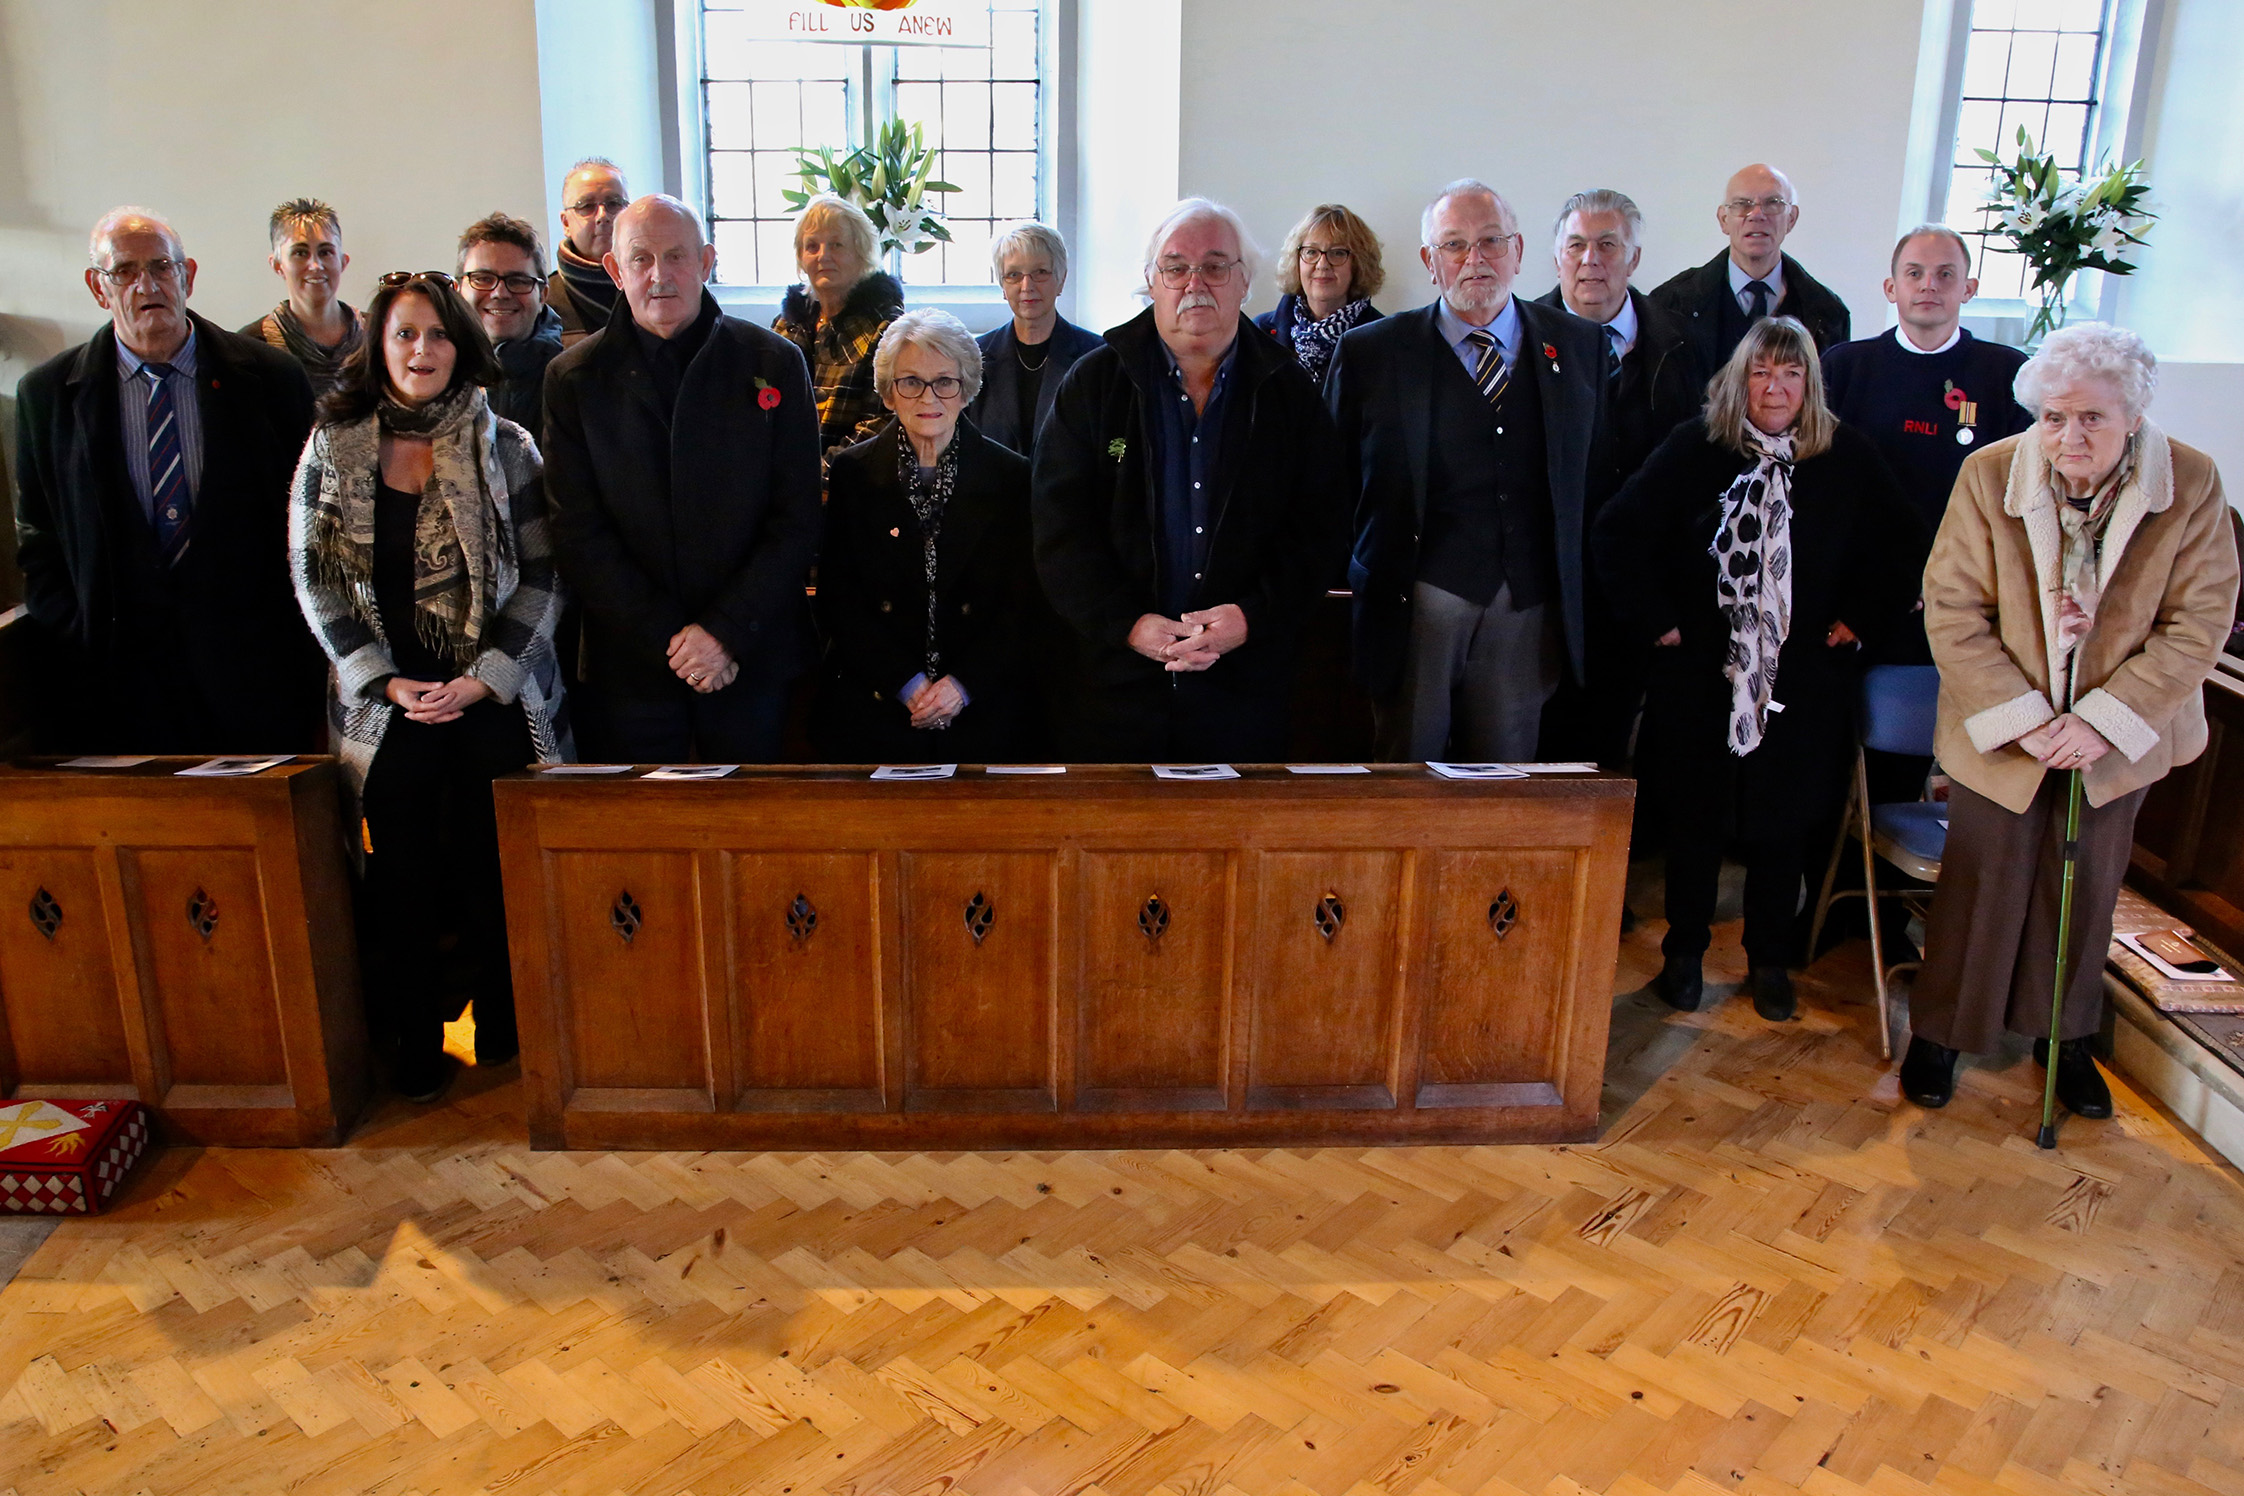 A gathering of seventeen descendants of the men who died in the Mary Stanford disaster standing in Rye Harbour church